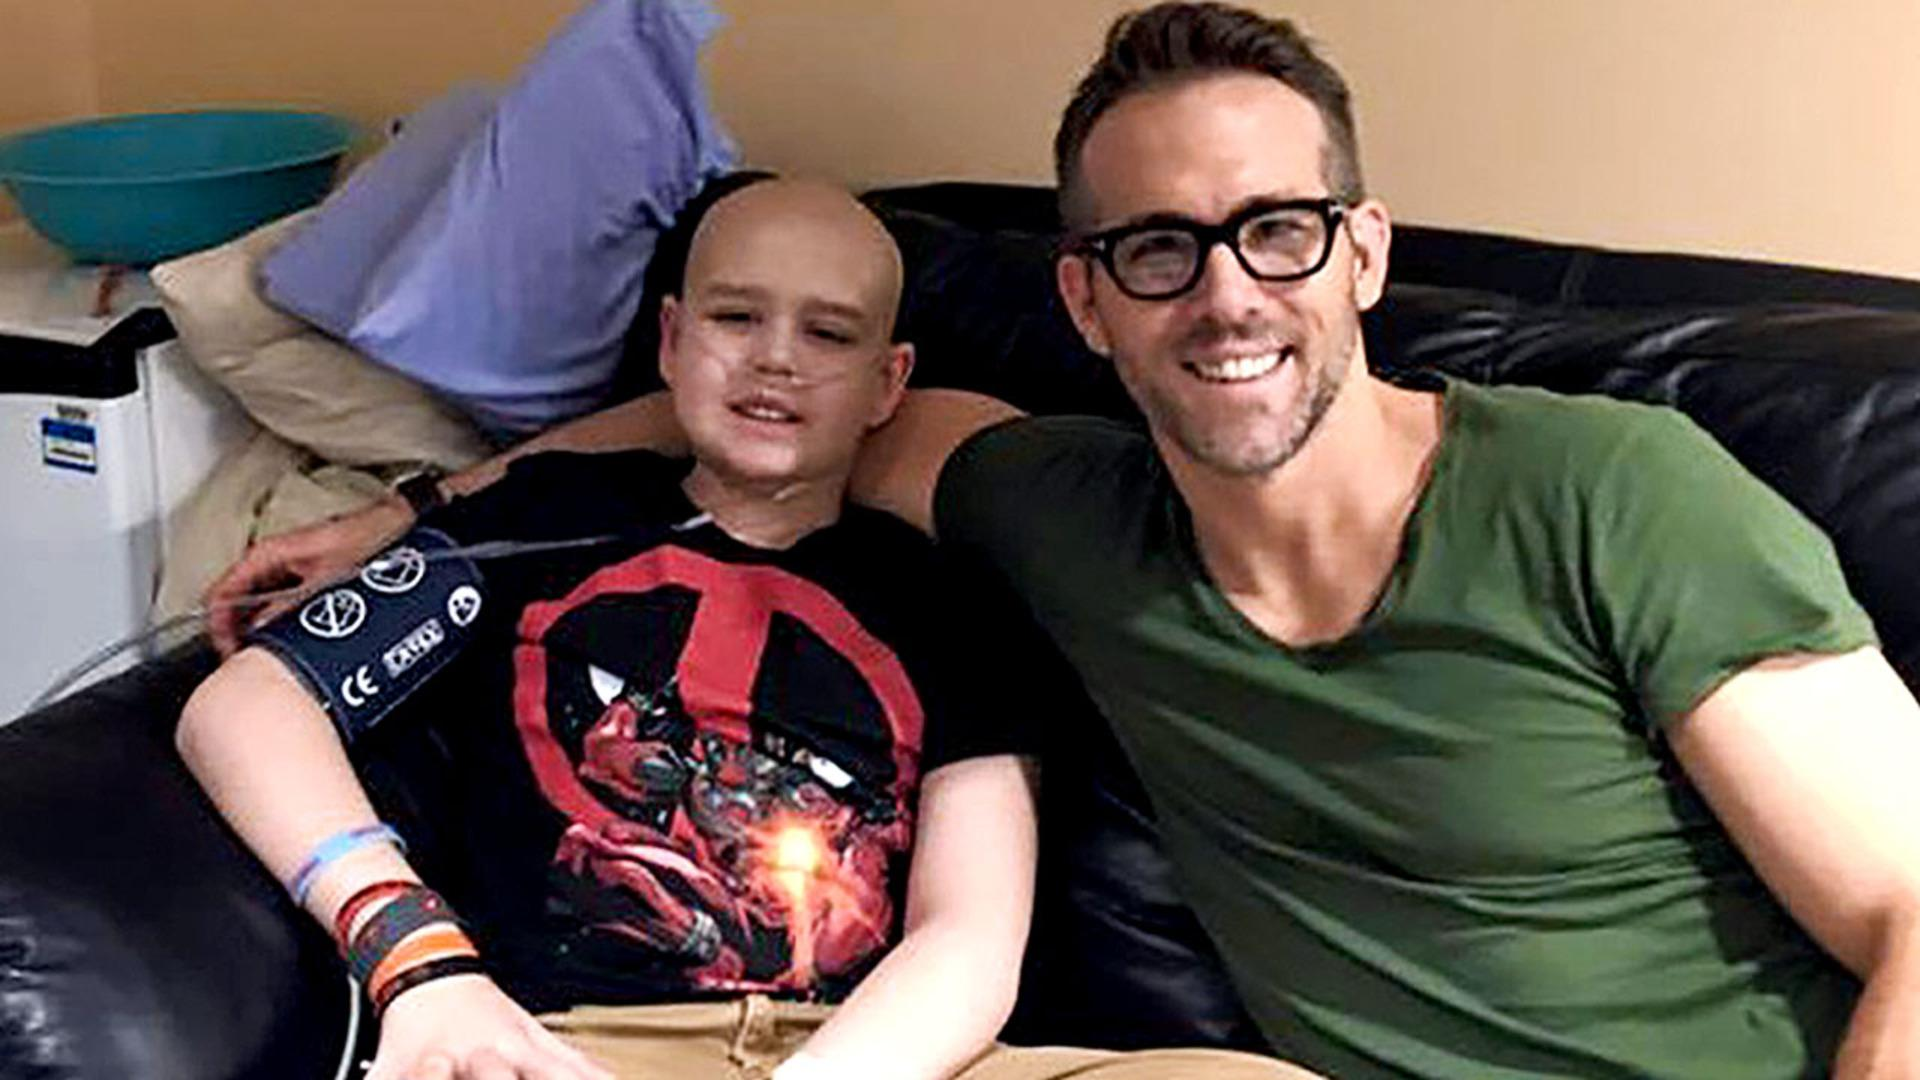 Ryan Reynolds Remembers 13 Year Old Boy Who Died of Cancer